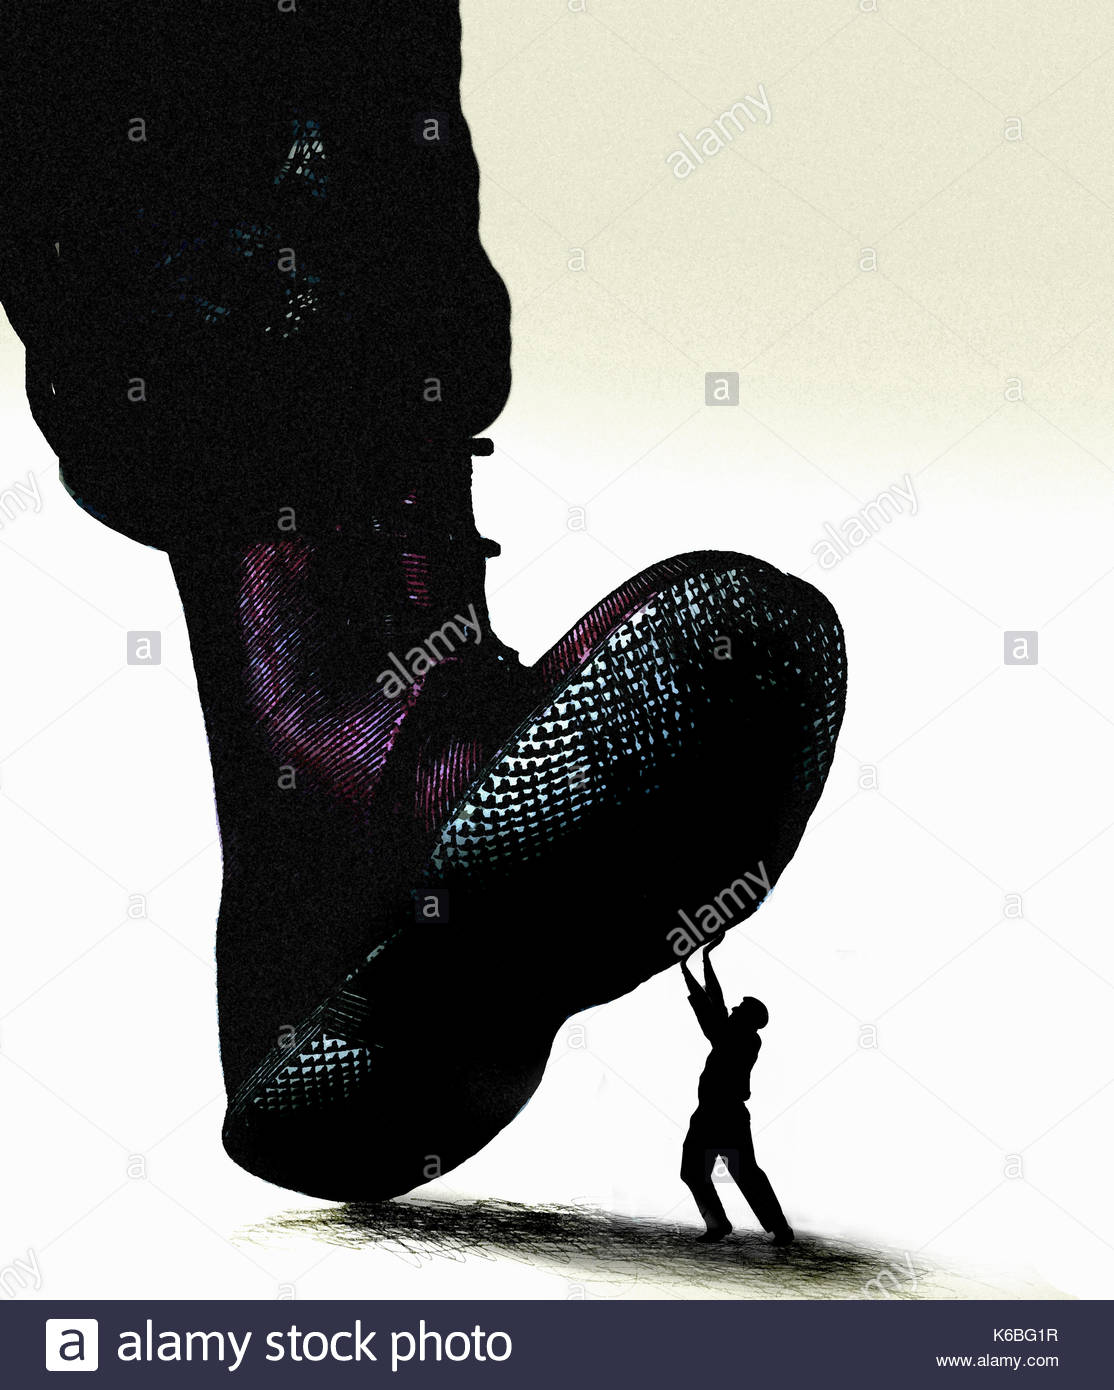 Large military boot stepping on man struggling below - Stock Image